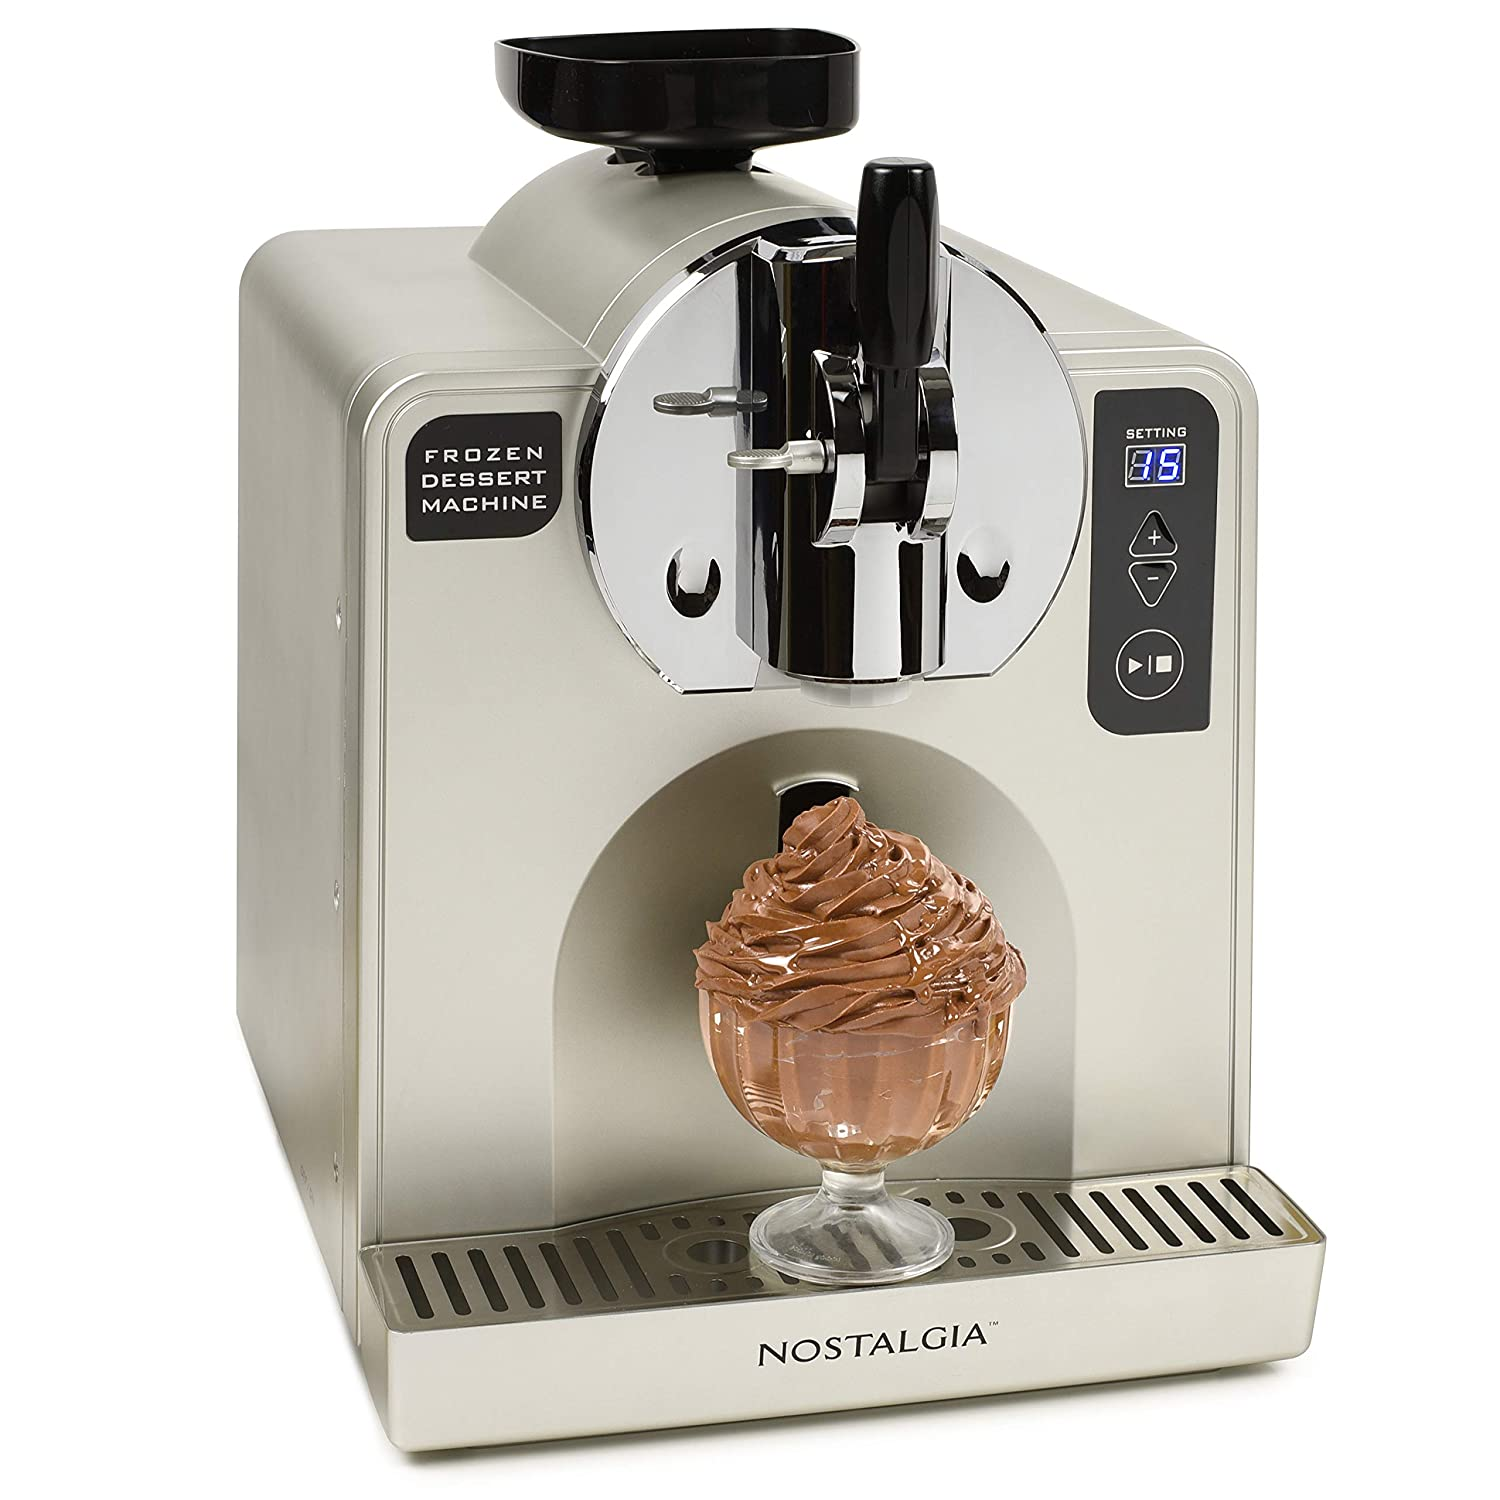 Nostalgia FDM1 Soft Serve and Frozen Dessert Machine